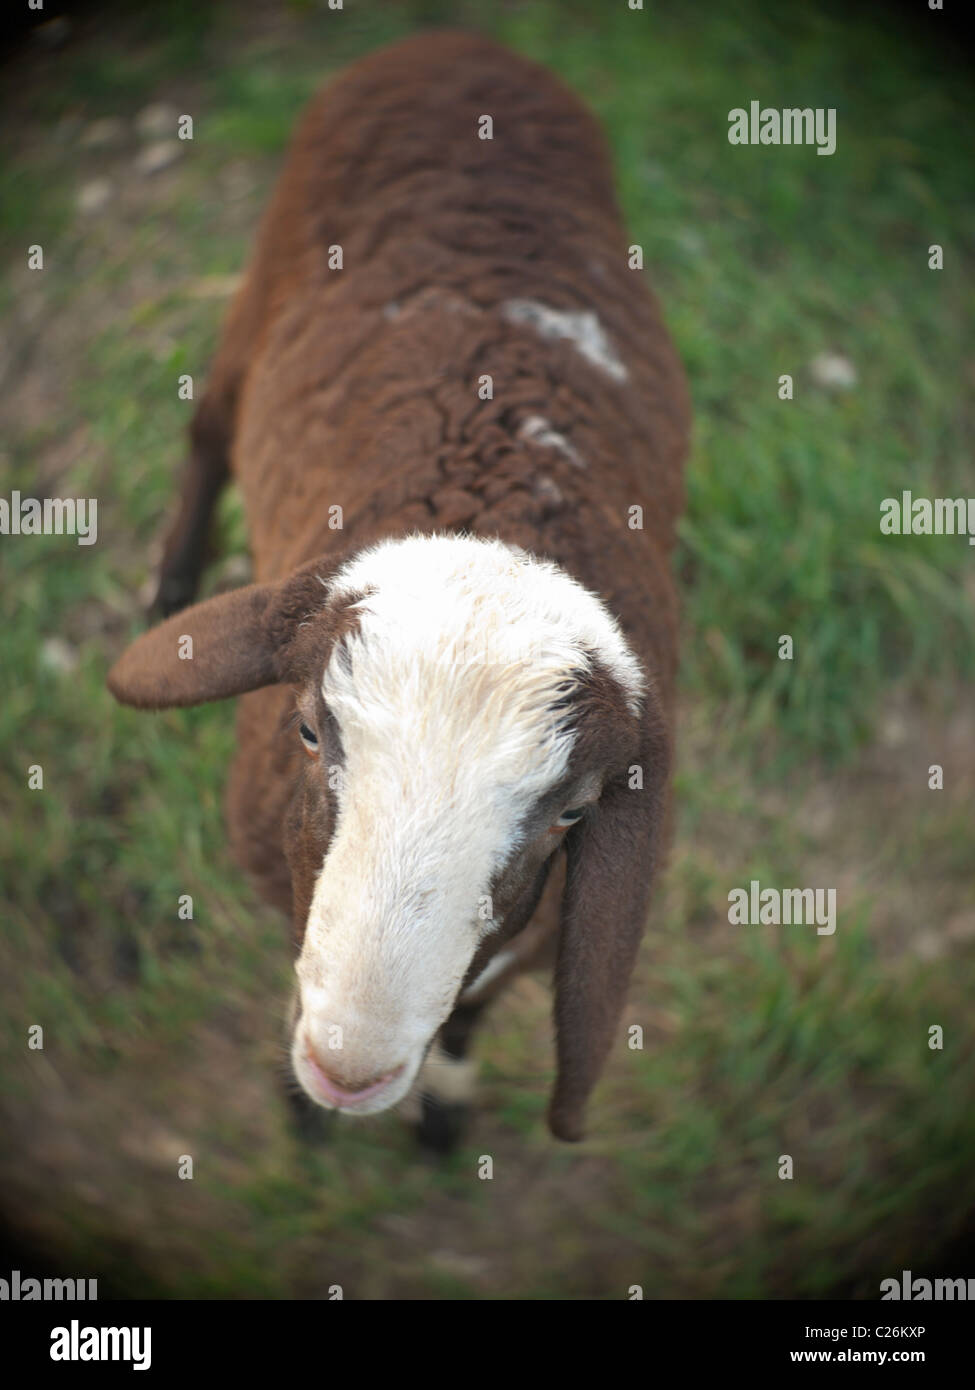 Lamb close-up with shallow DOF and lens vignette - Stock Image